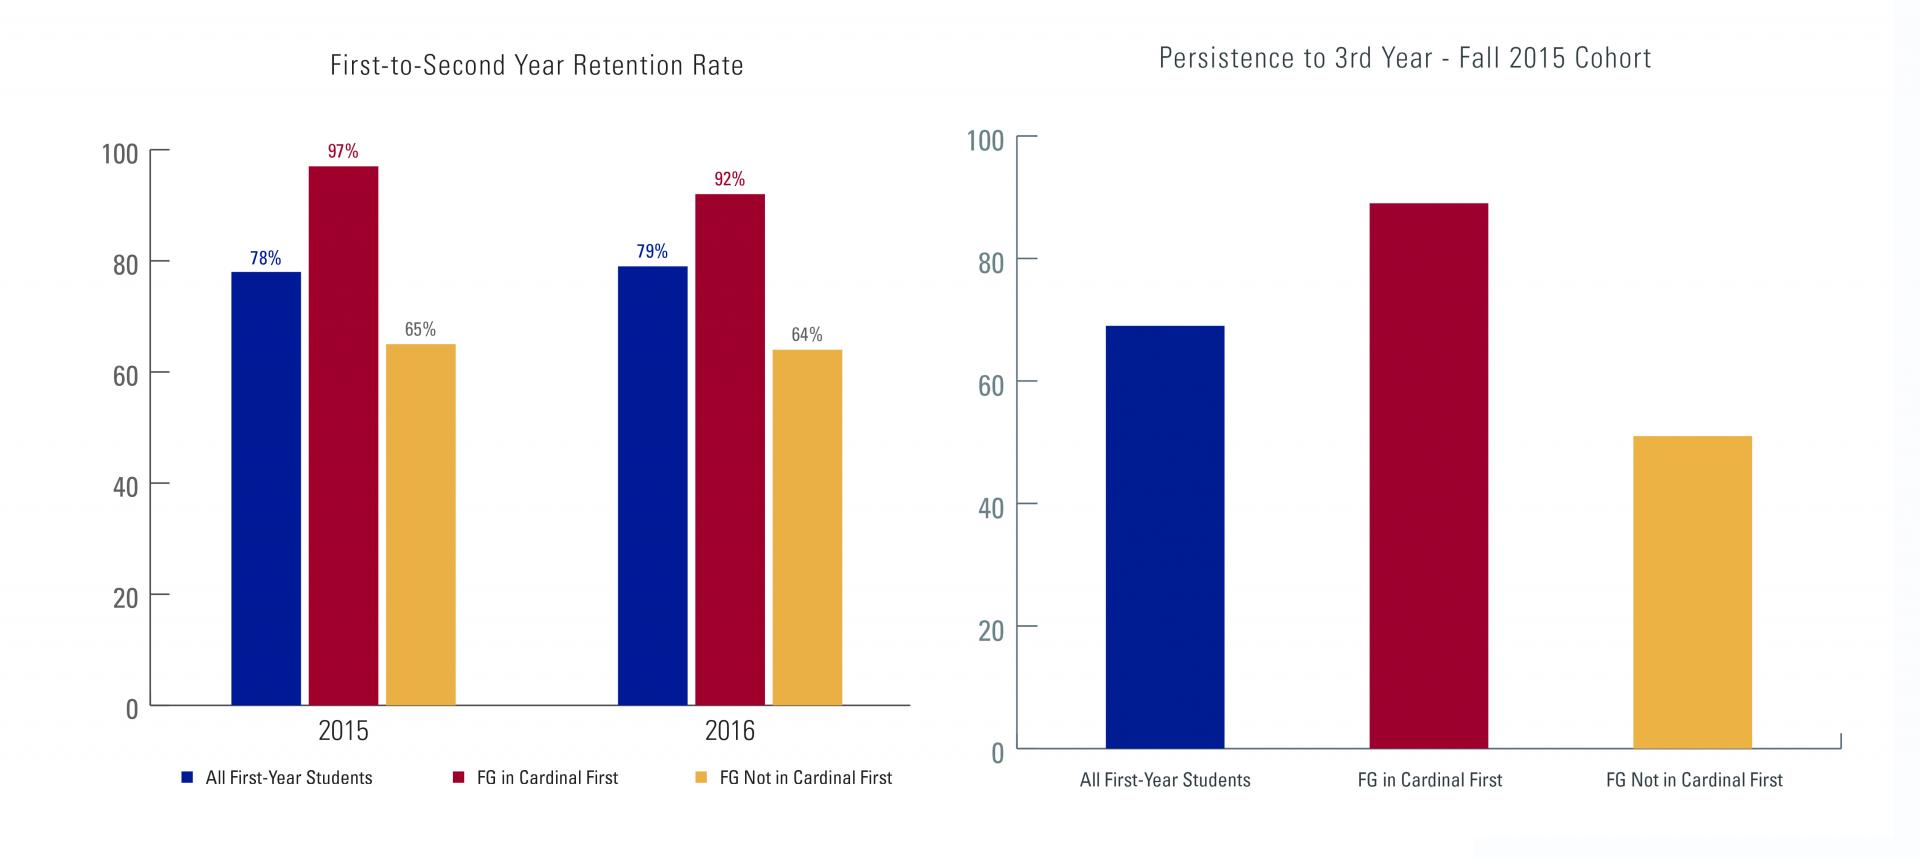 A graph depicting first-to-second year retention rate and persistence to the third year of first-generation students.